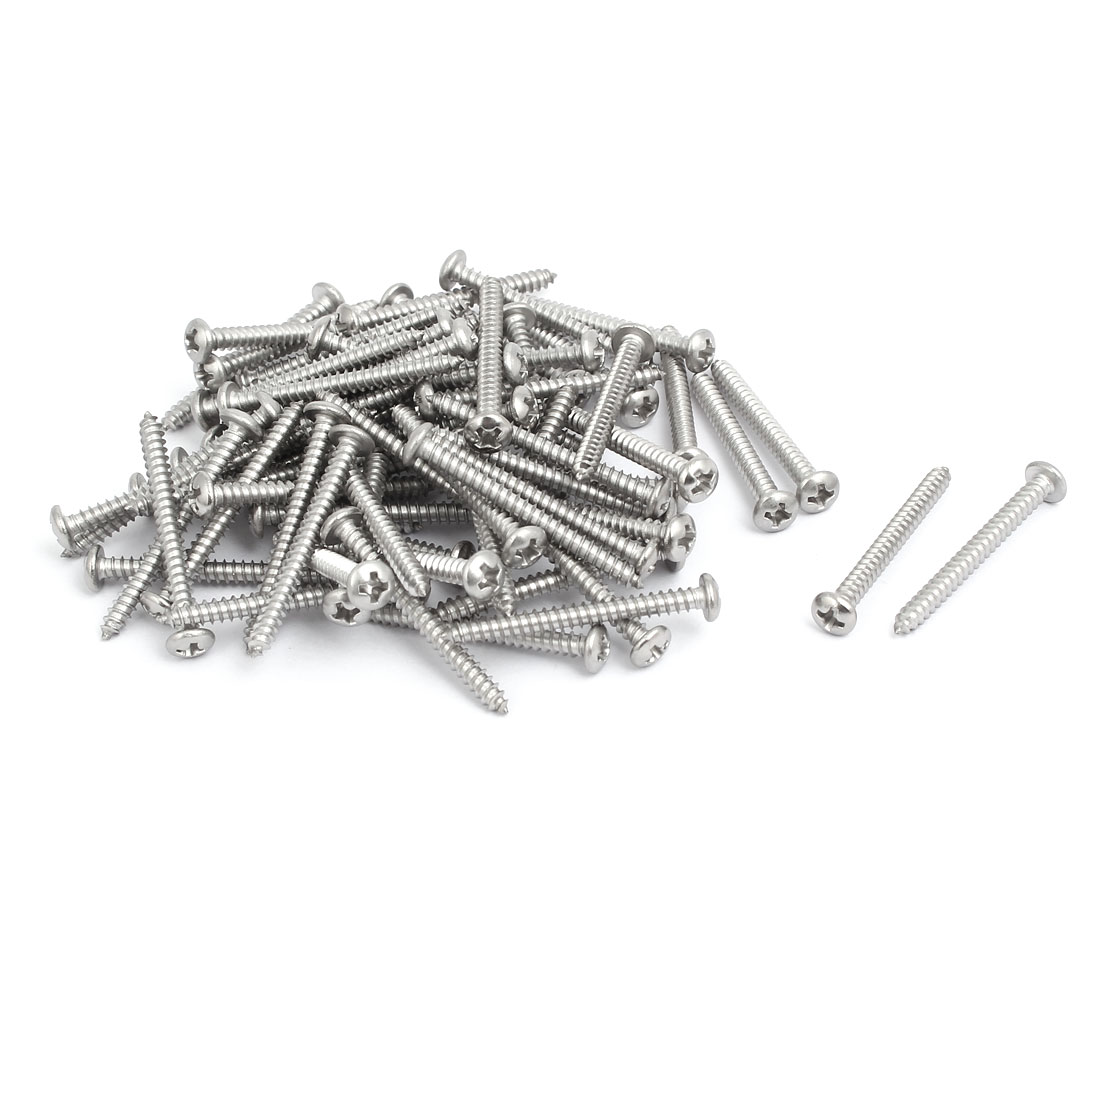 M3.5x35mm 304 Stainless Steel Phillips Drive Pan Head Self Tapping Screws 100pcs